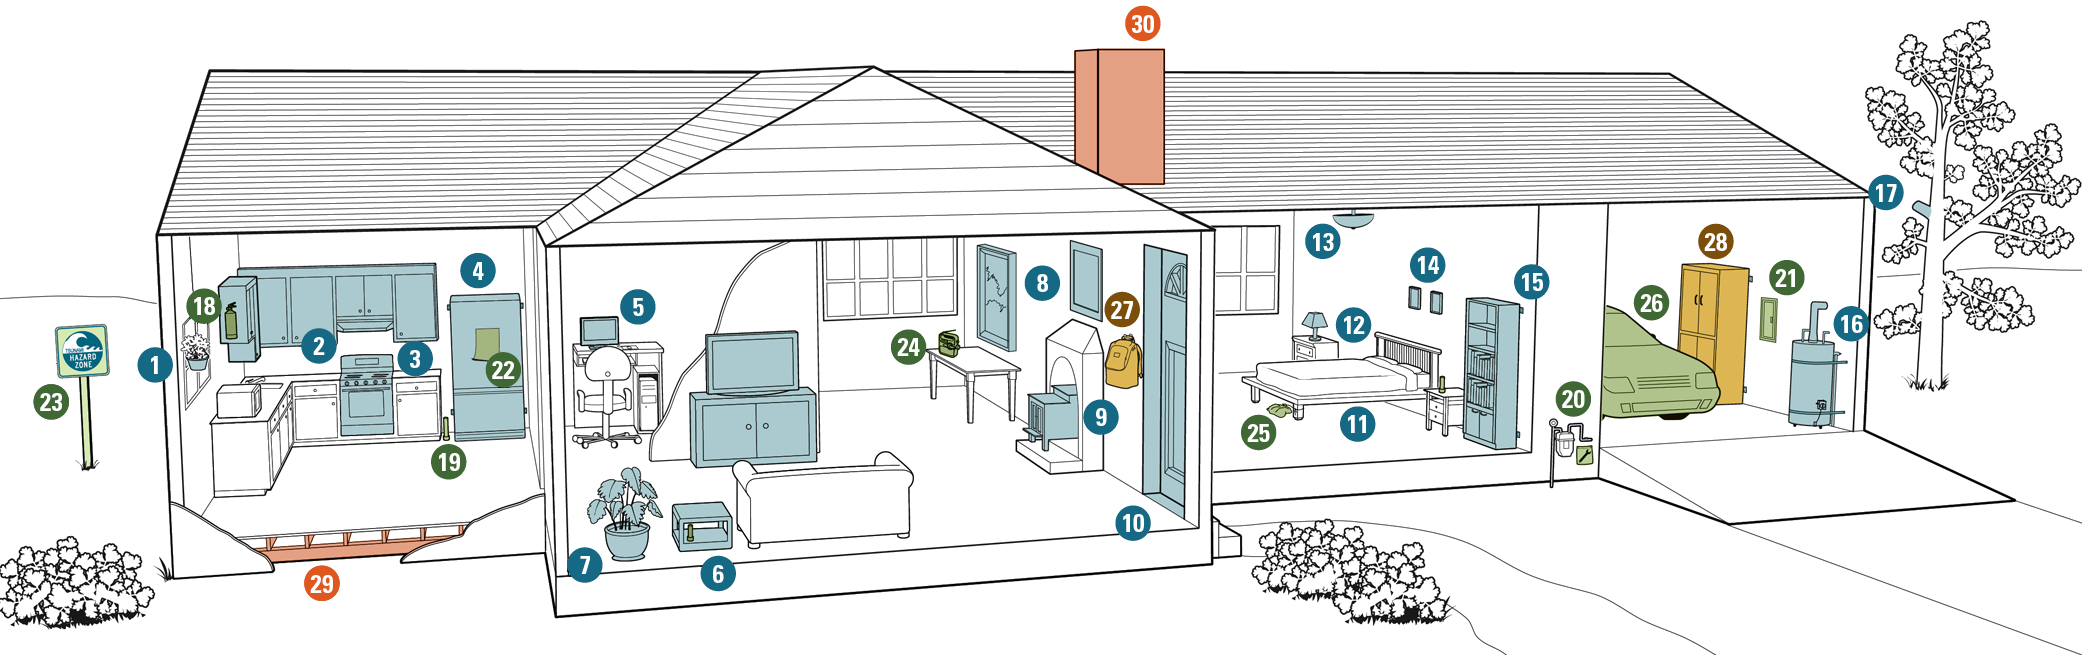 The Seven Steps To Earthquake Safety Putting Down Roots In